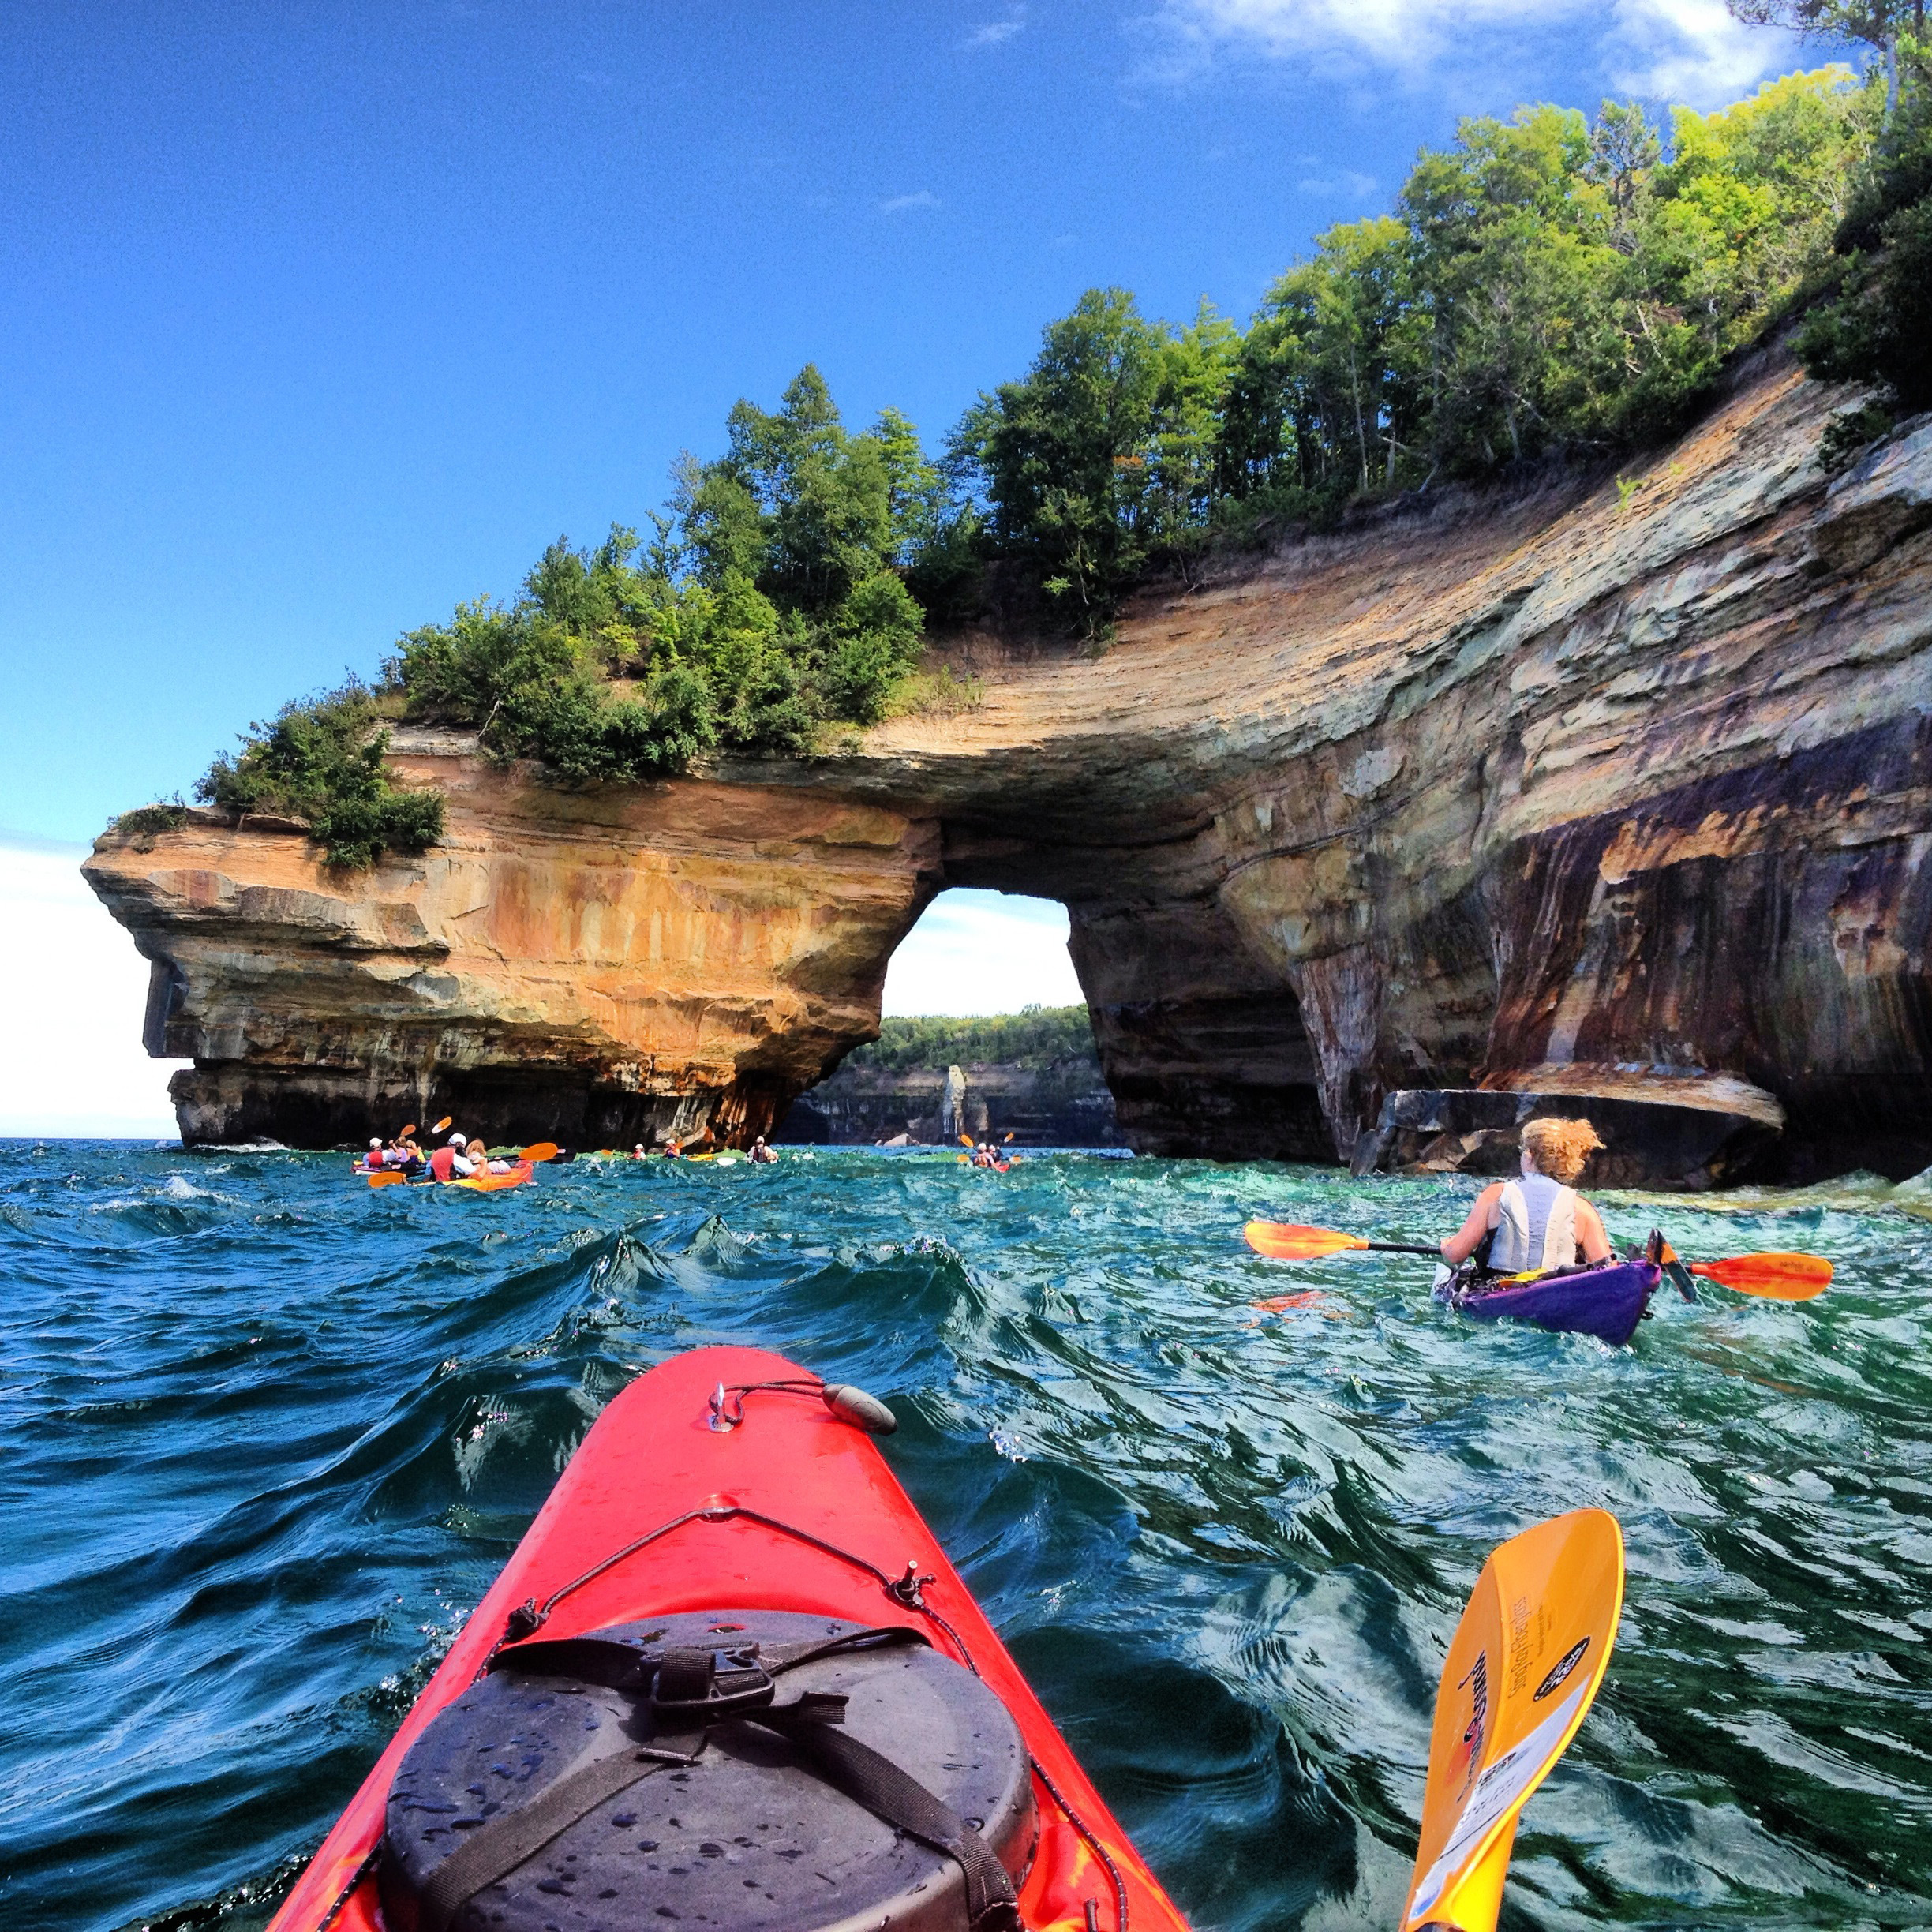 2013 Share the Experience winning photo of Pictured Rocks National Lakeshore by Courtney Kotewa. (Photo: Business Wire)